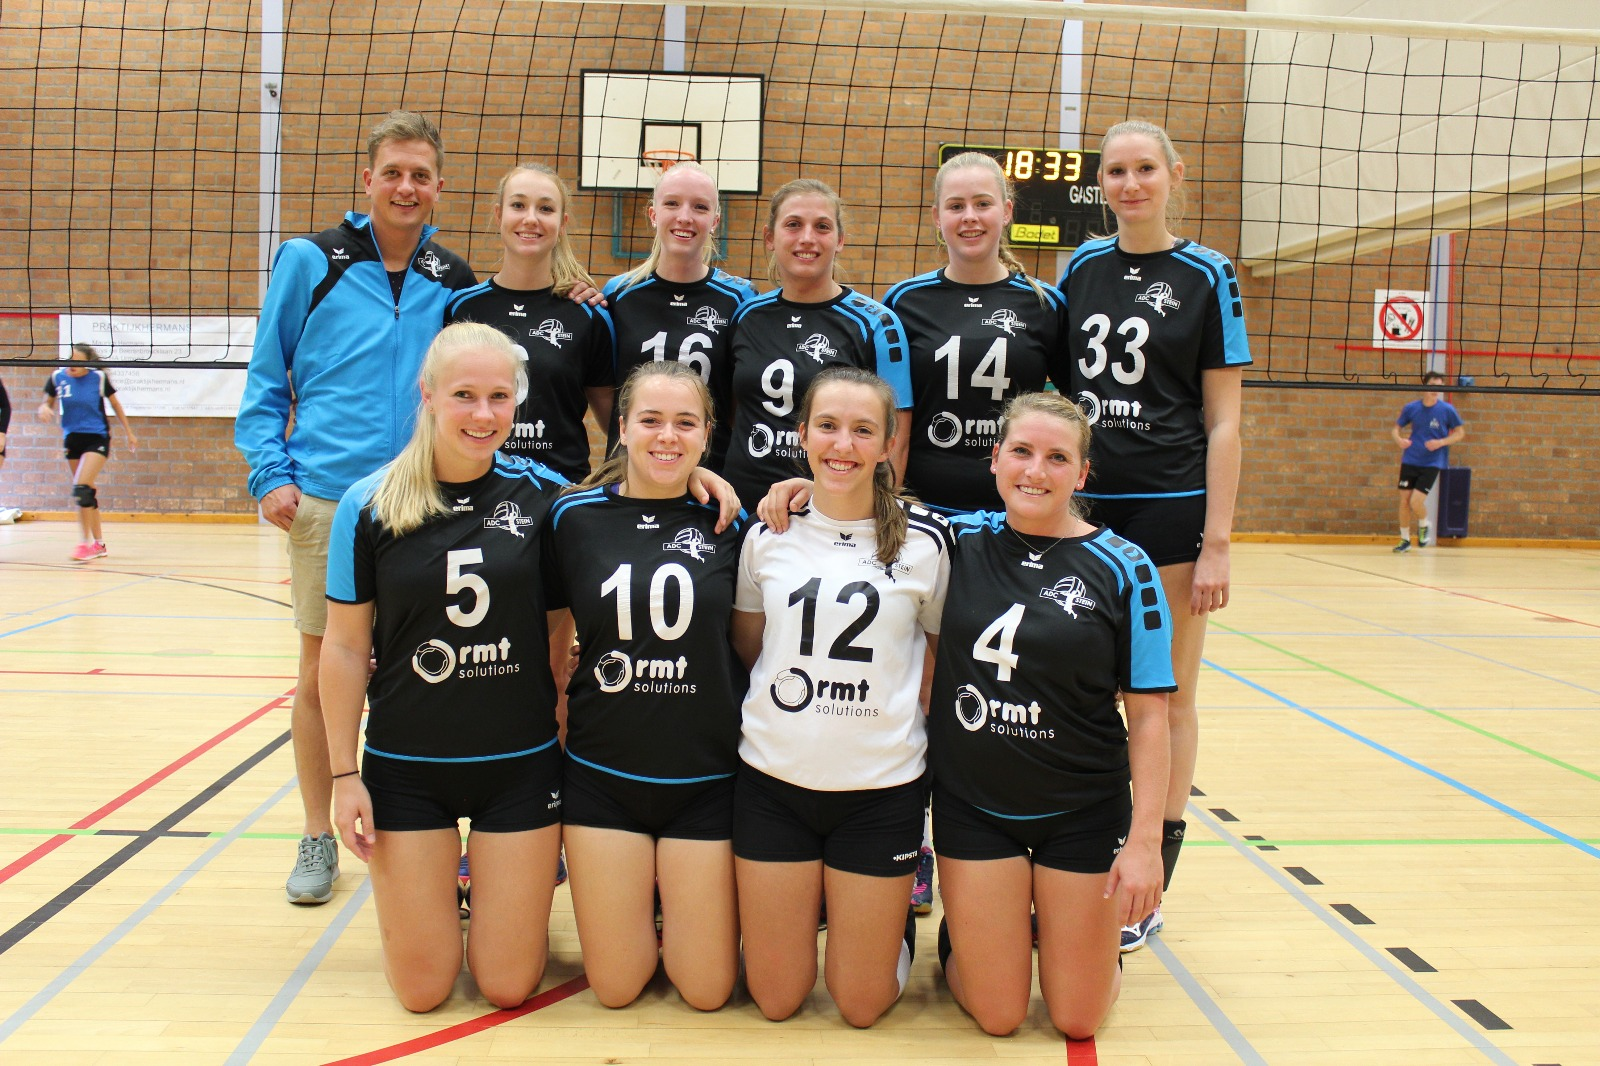 https://www.adc-stein.nl/wp-content/uploads/2018/10/2018-2019-DAMES-1.jpeg